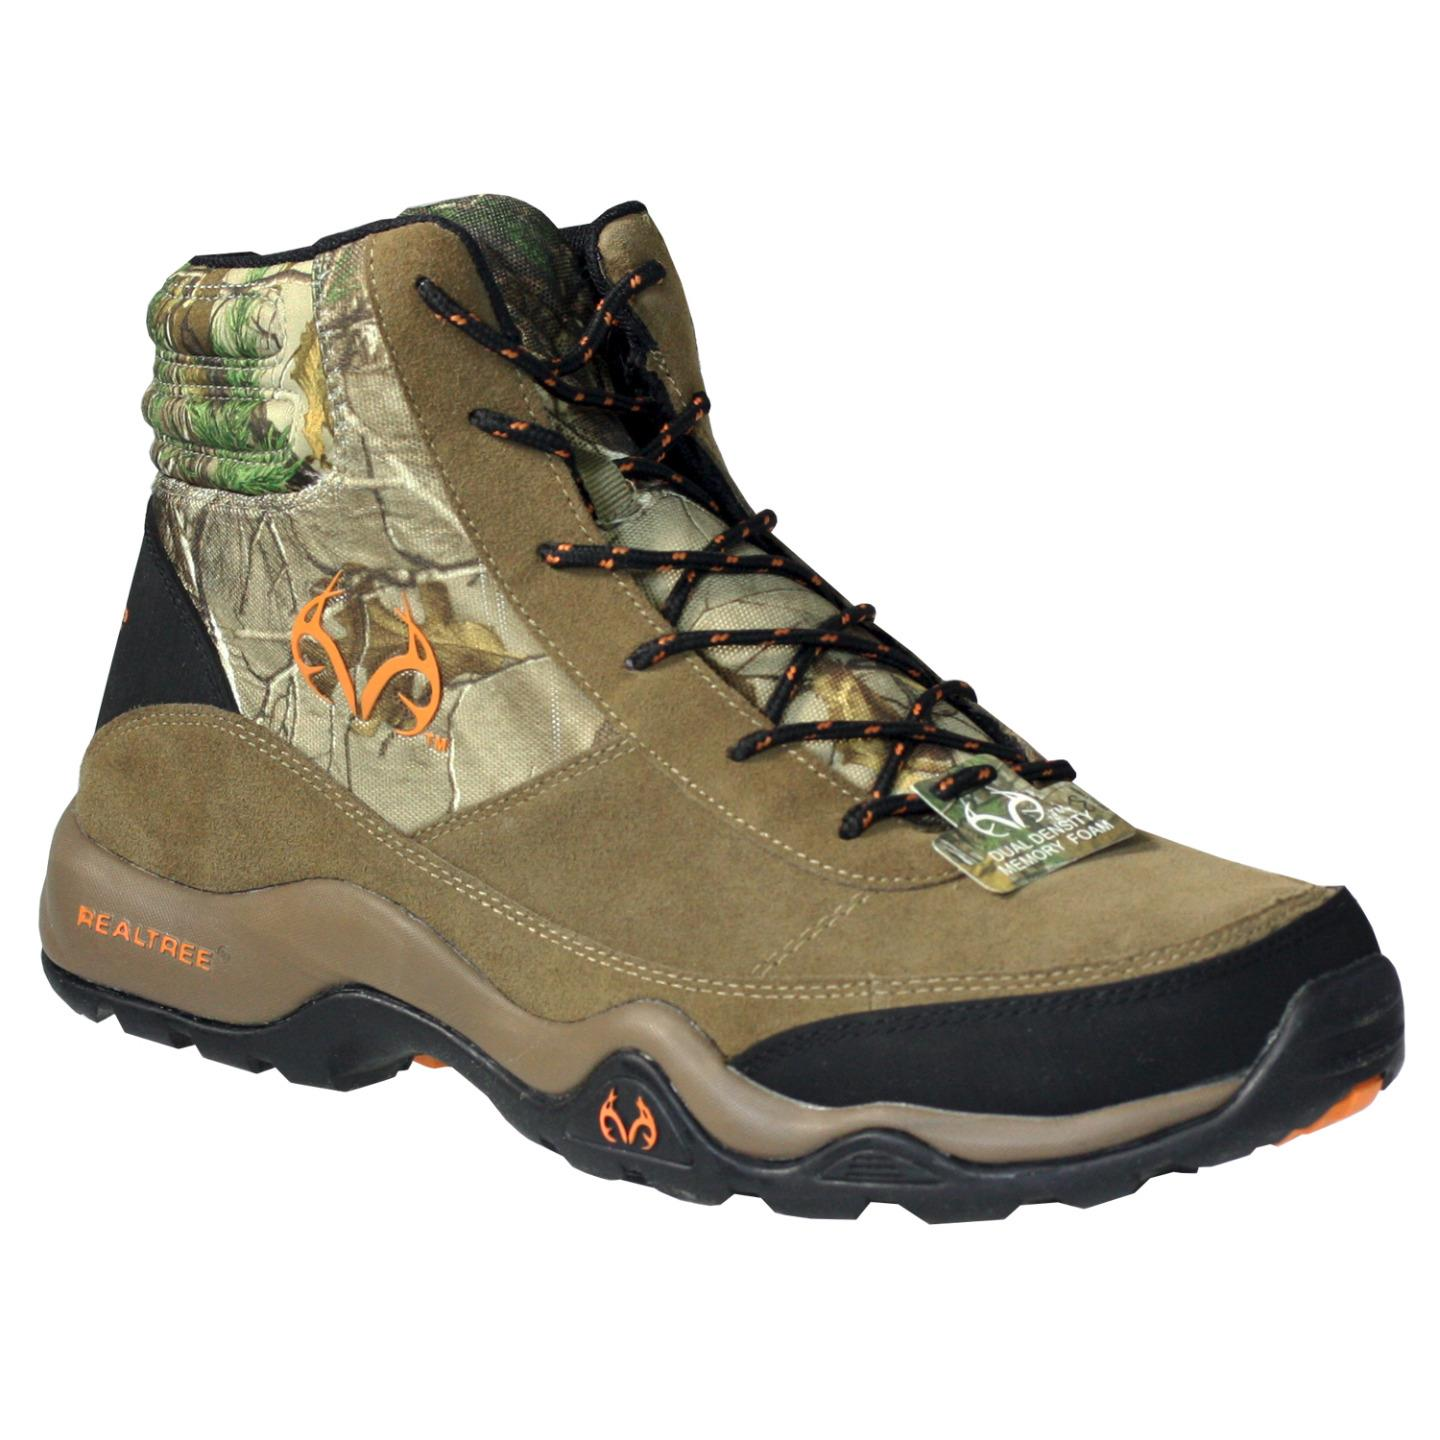 Realtree Outfitters Men's Bison Brown Camouflage Hiking Boots 11 M by RealTree Outfitters